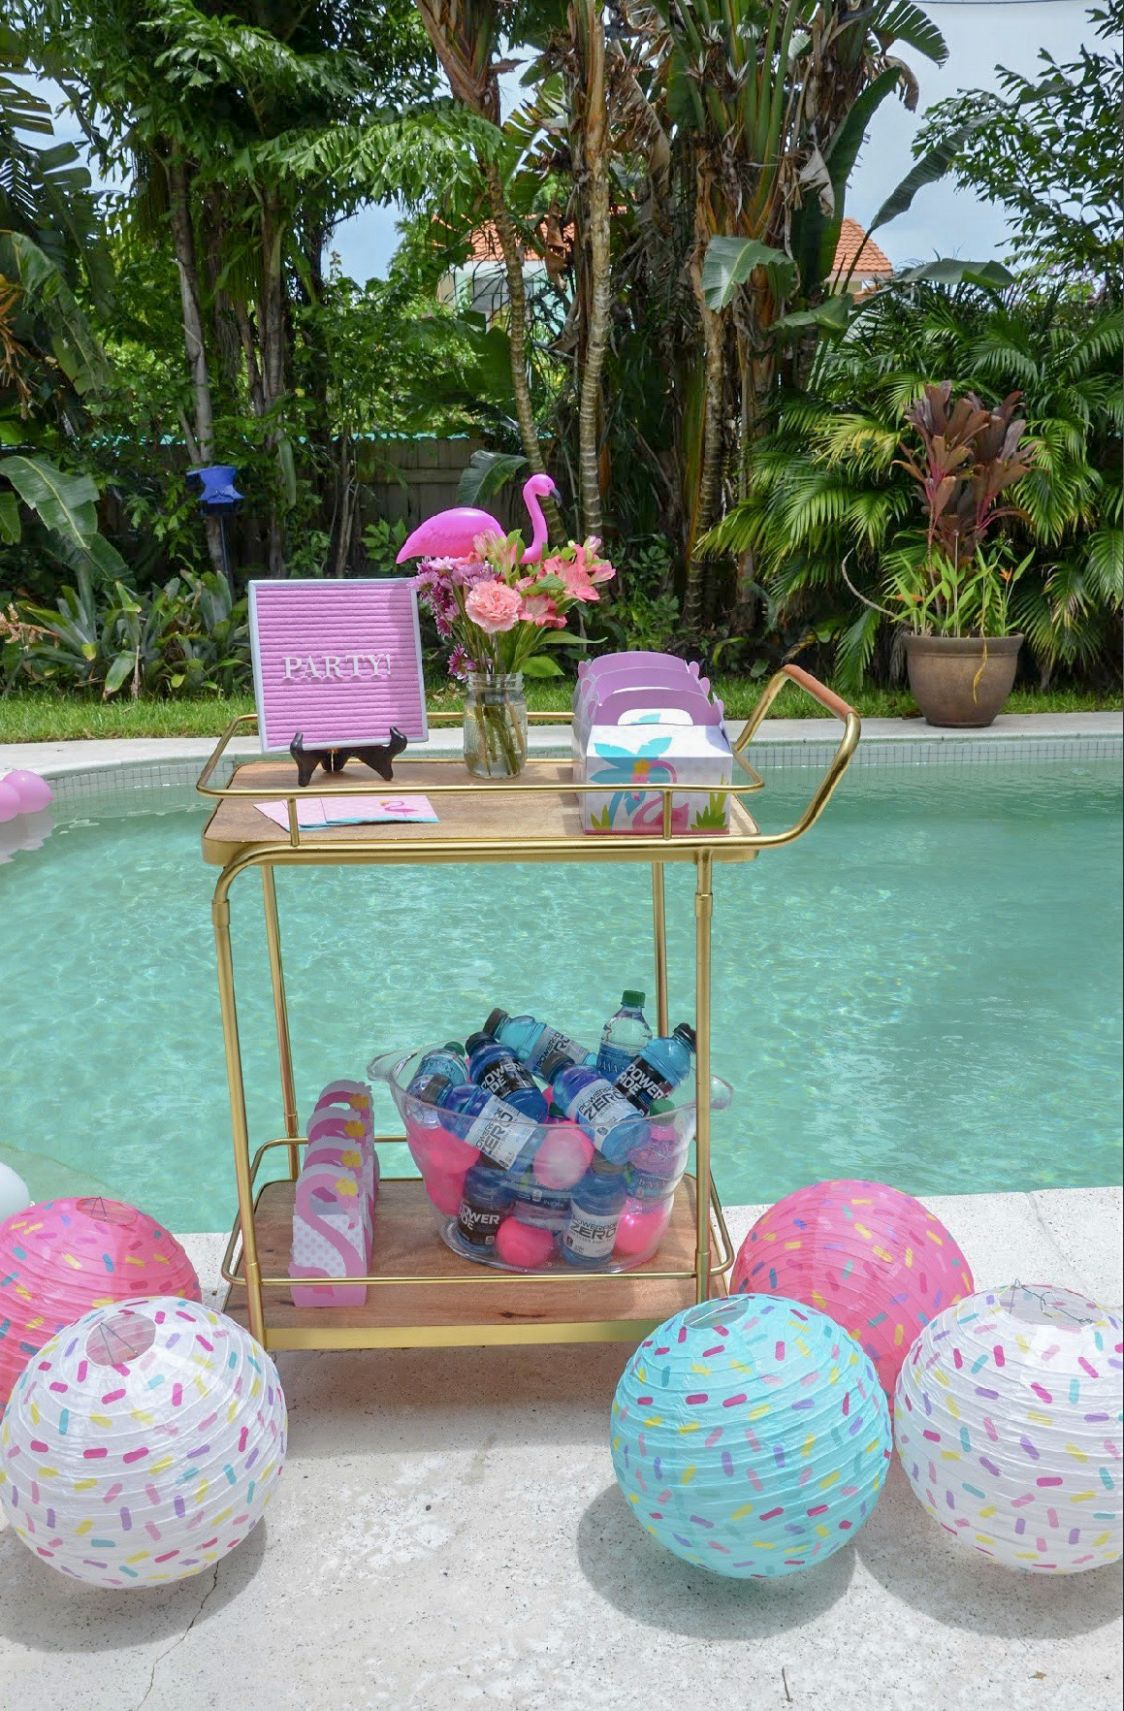 How to Throw a Pool Party for Kids • Happy Family Blog